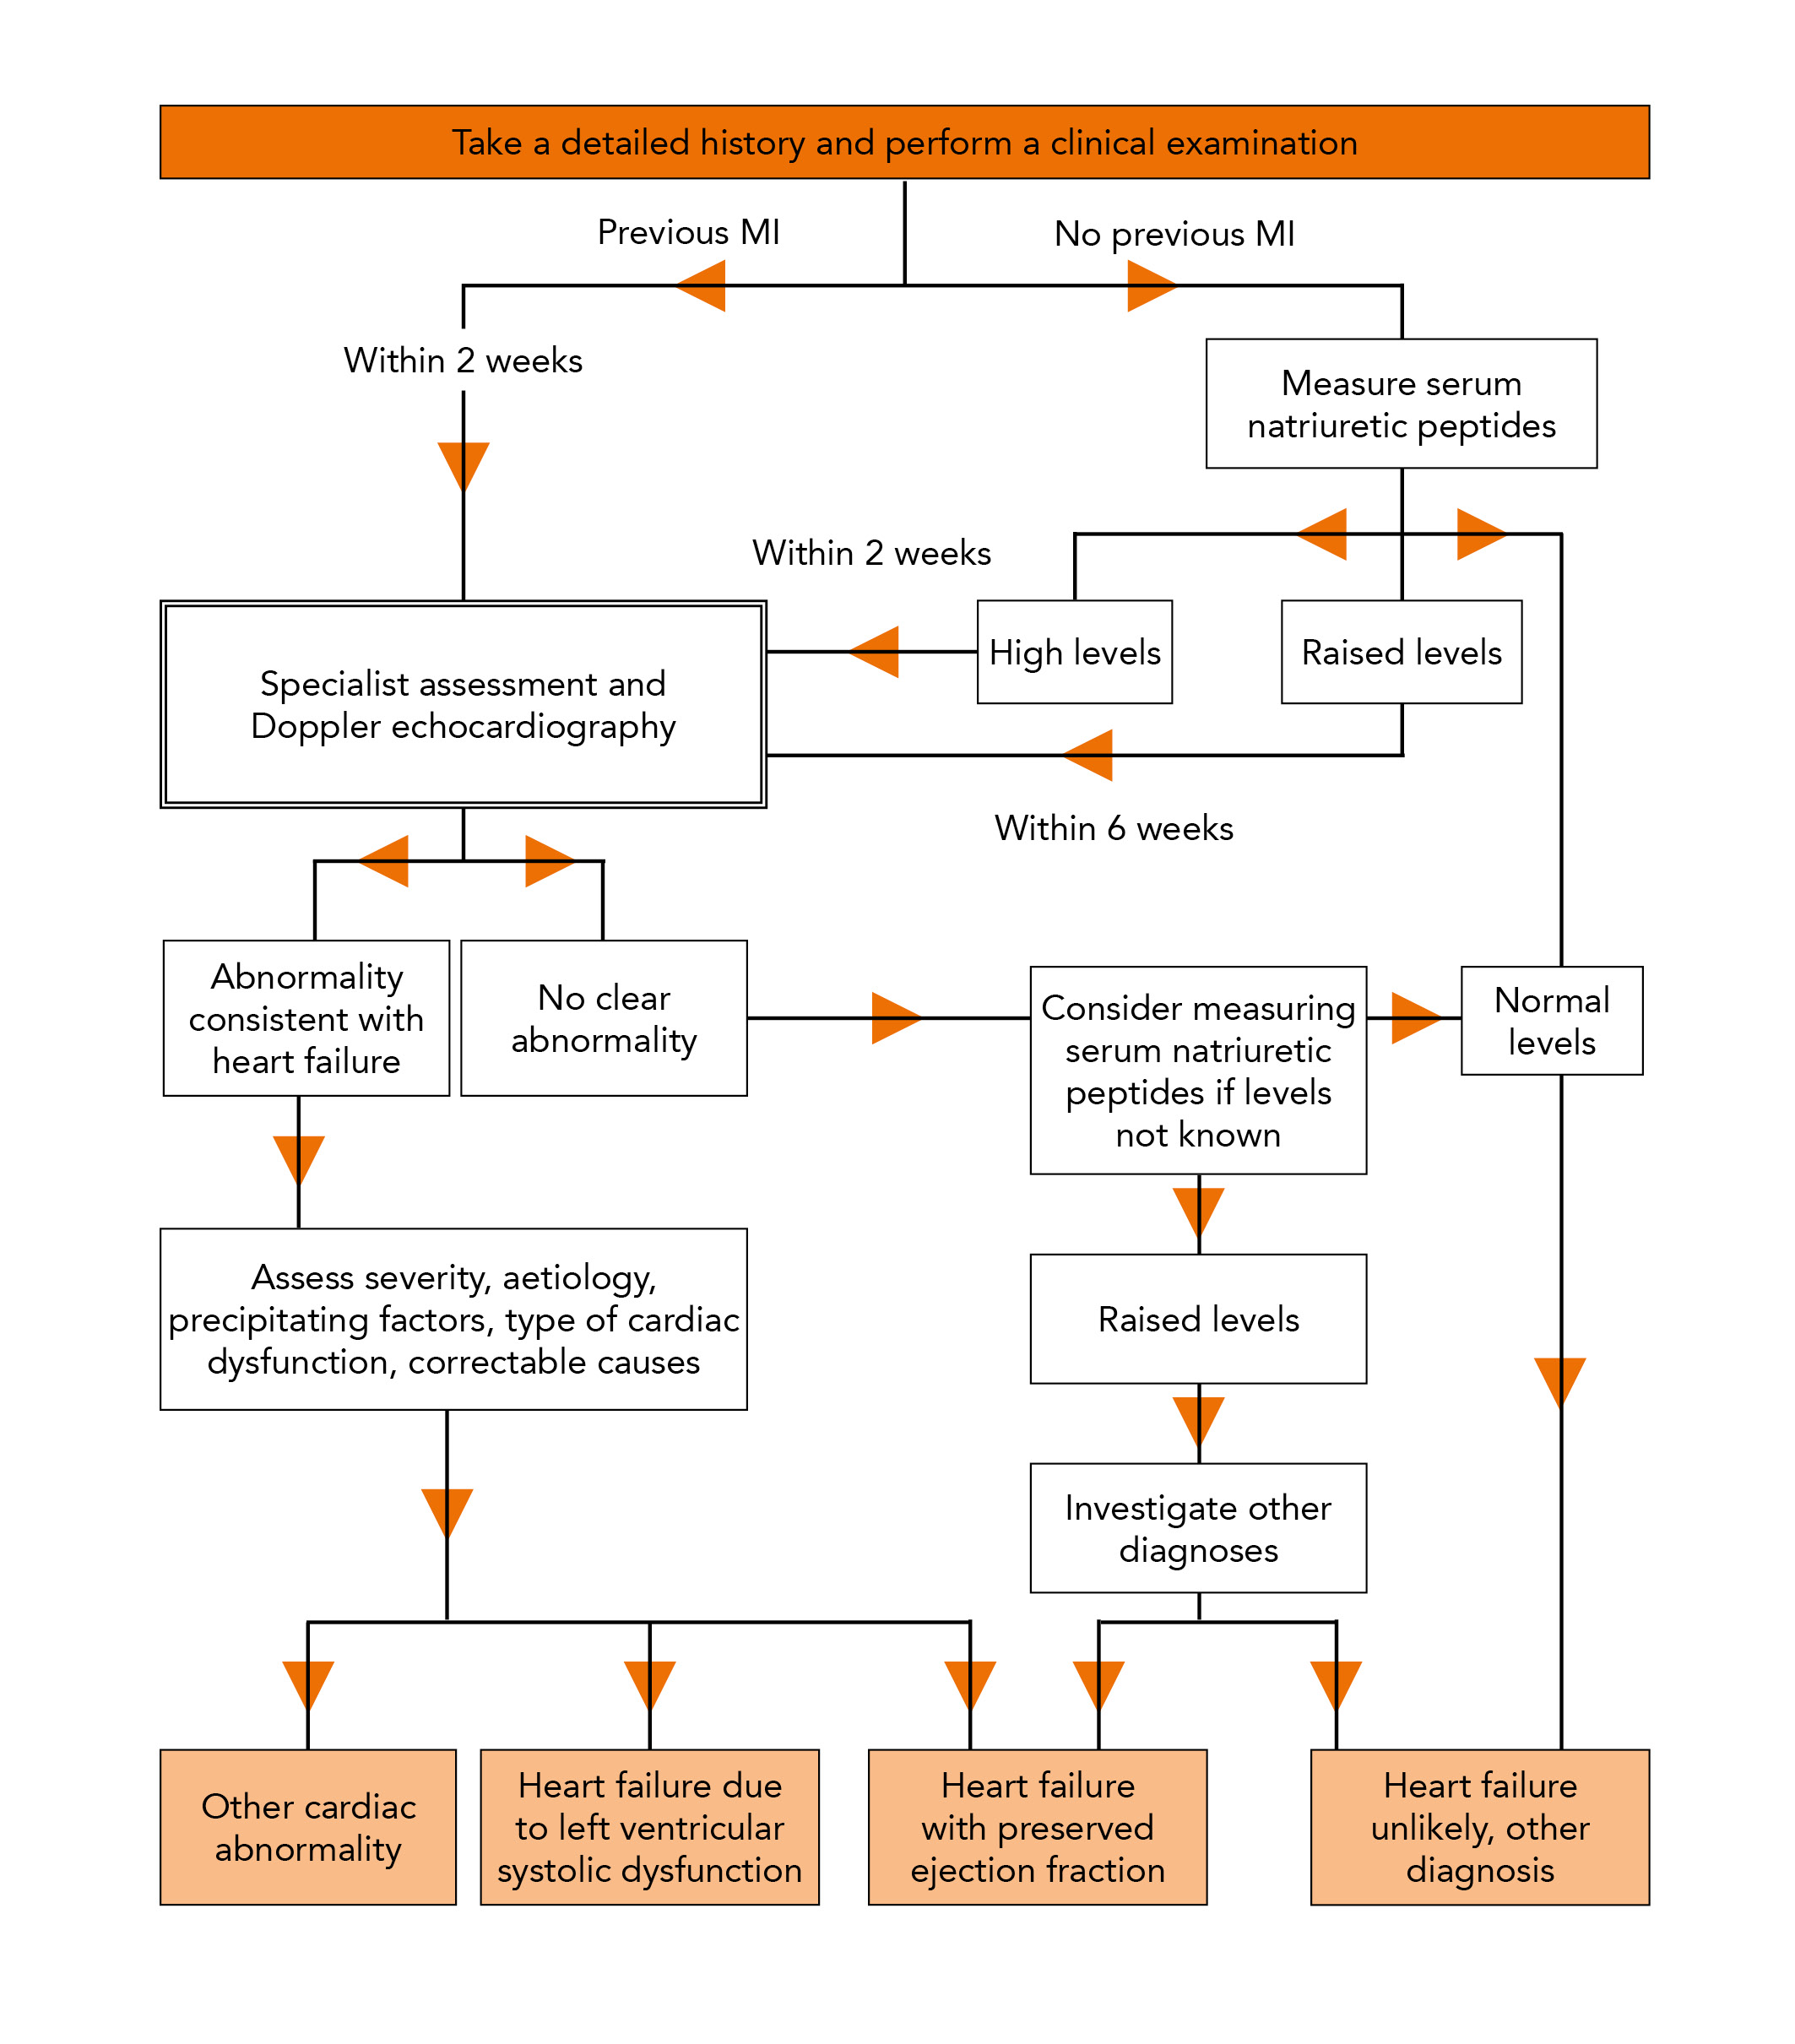 Figure 2: Algorithm for the treatment of symptomatic chronic heart failure